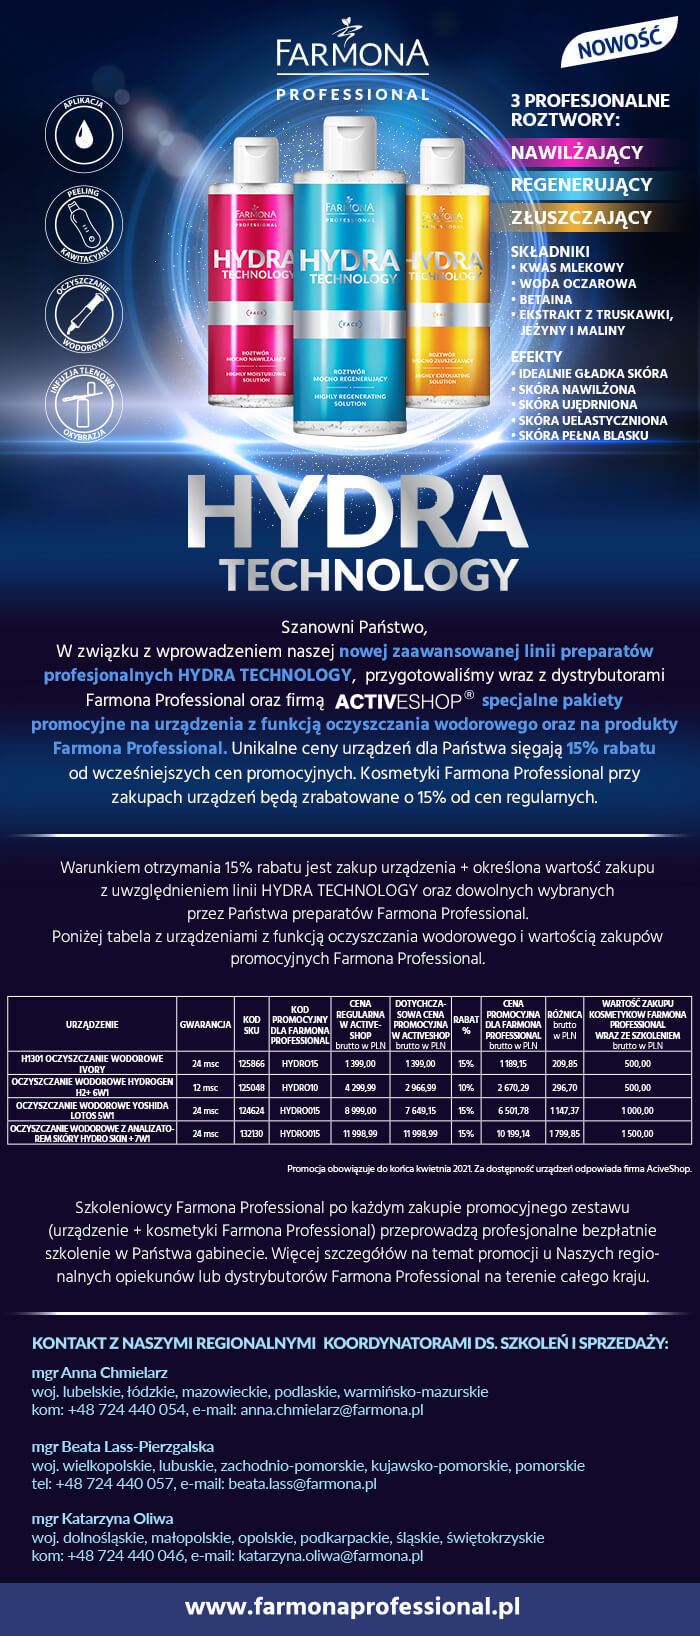 Hydra technology